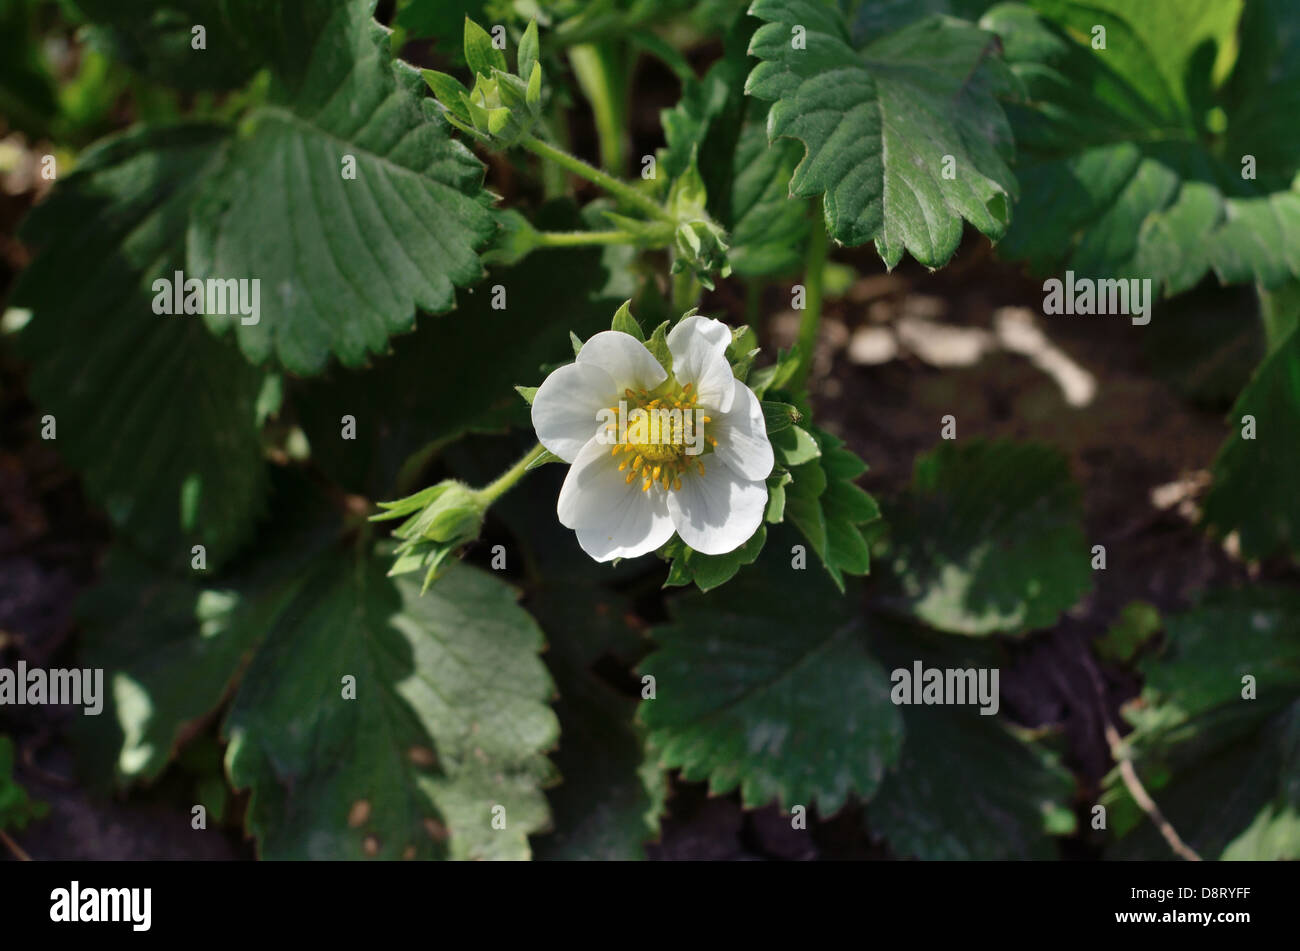 inflorescence on the background of leaves and lettings - Stock Image